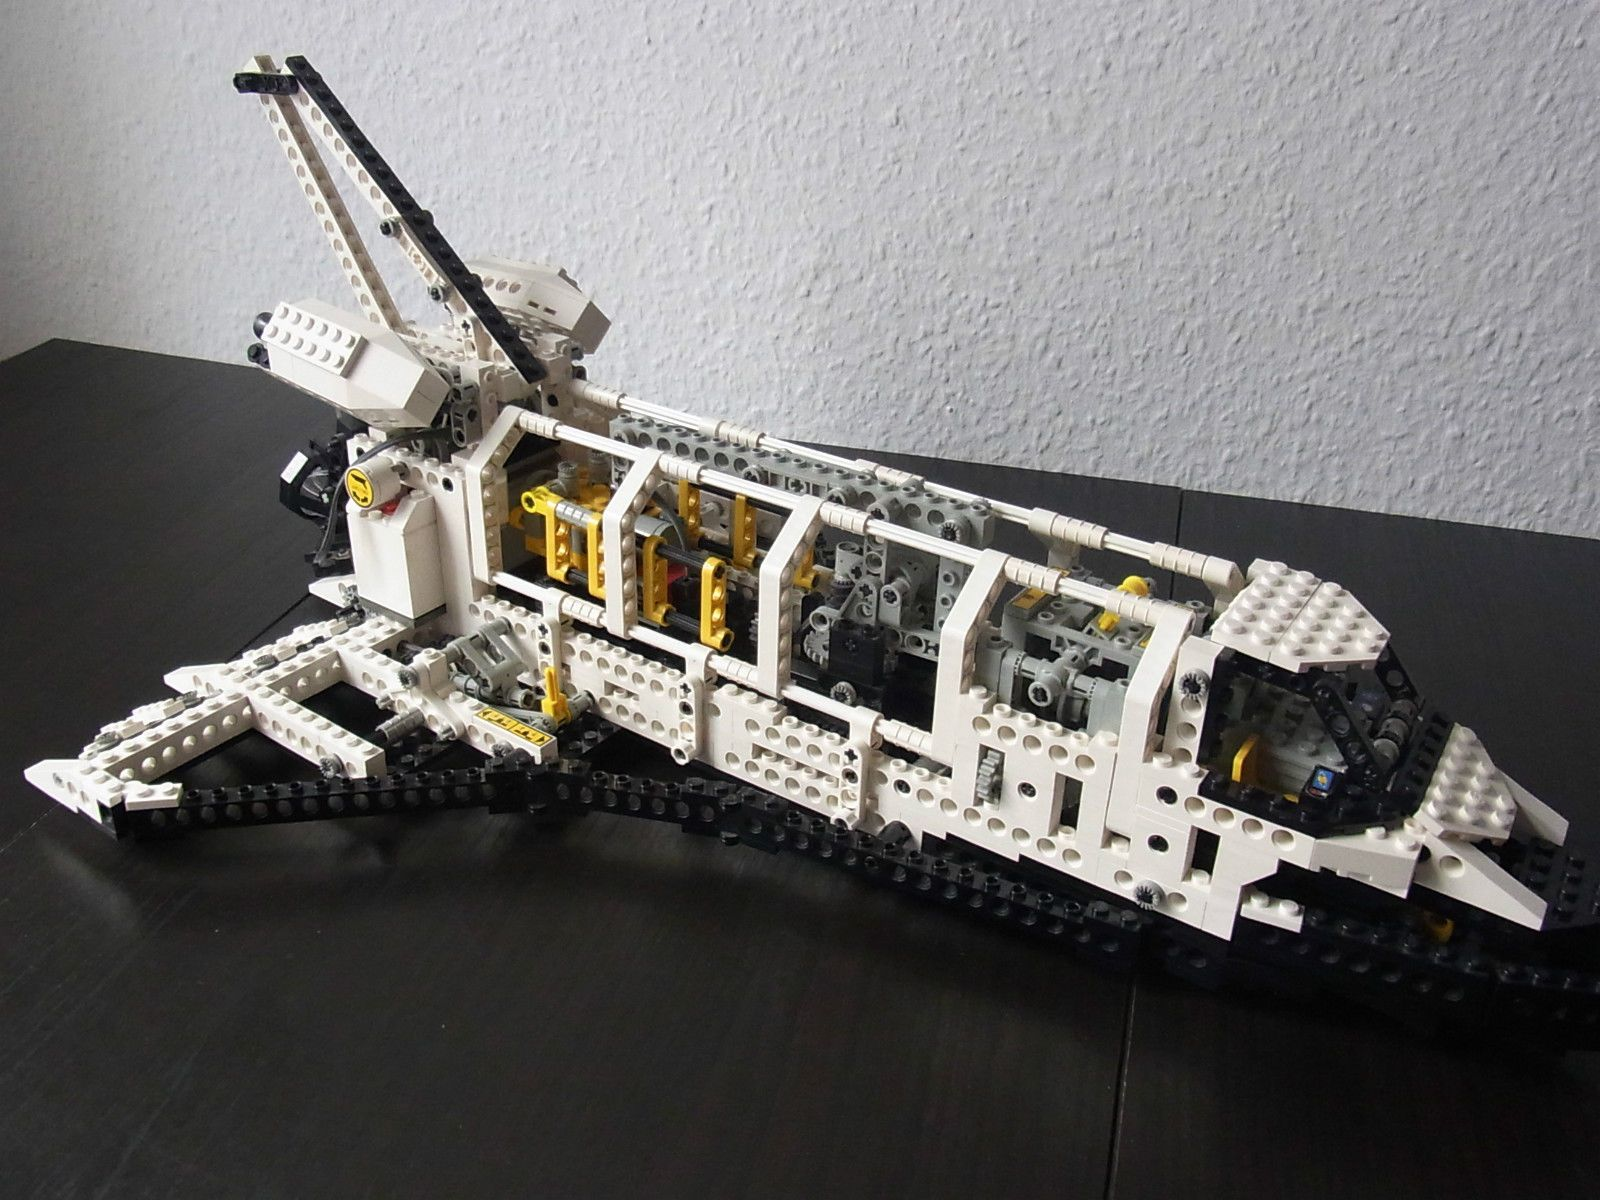 lego technic set 8480 space shuttle ebay lego i want. Black Bedroom Furniture Sets. Home Design Ideas